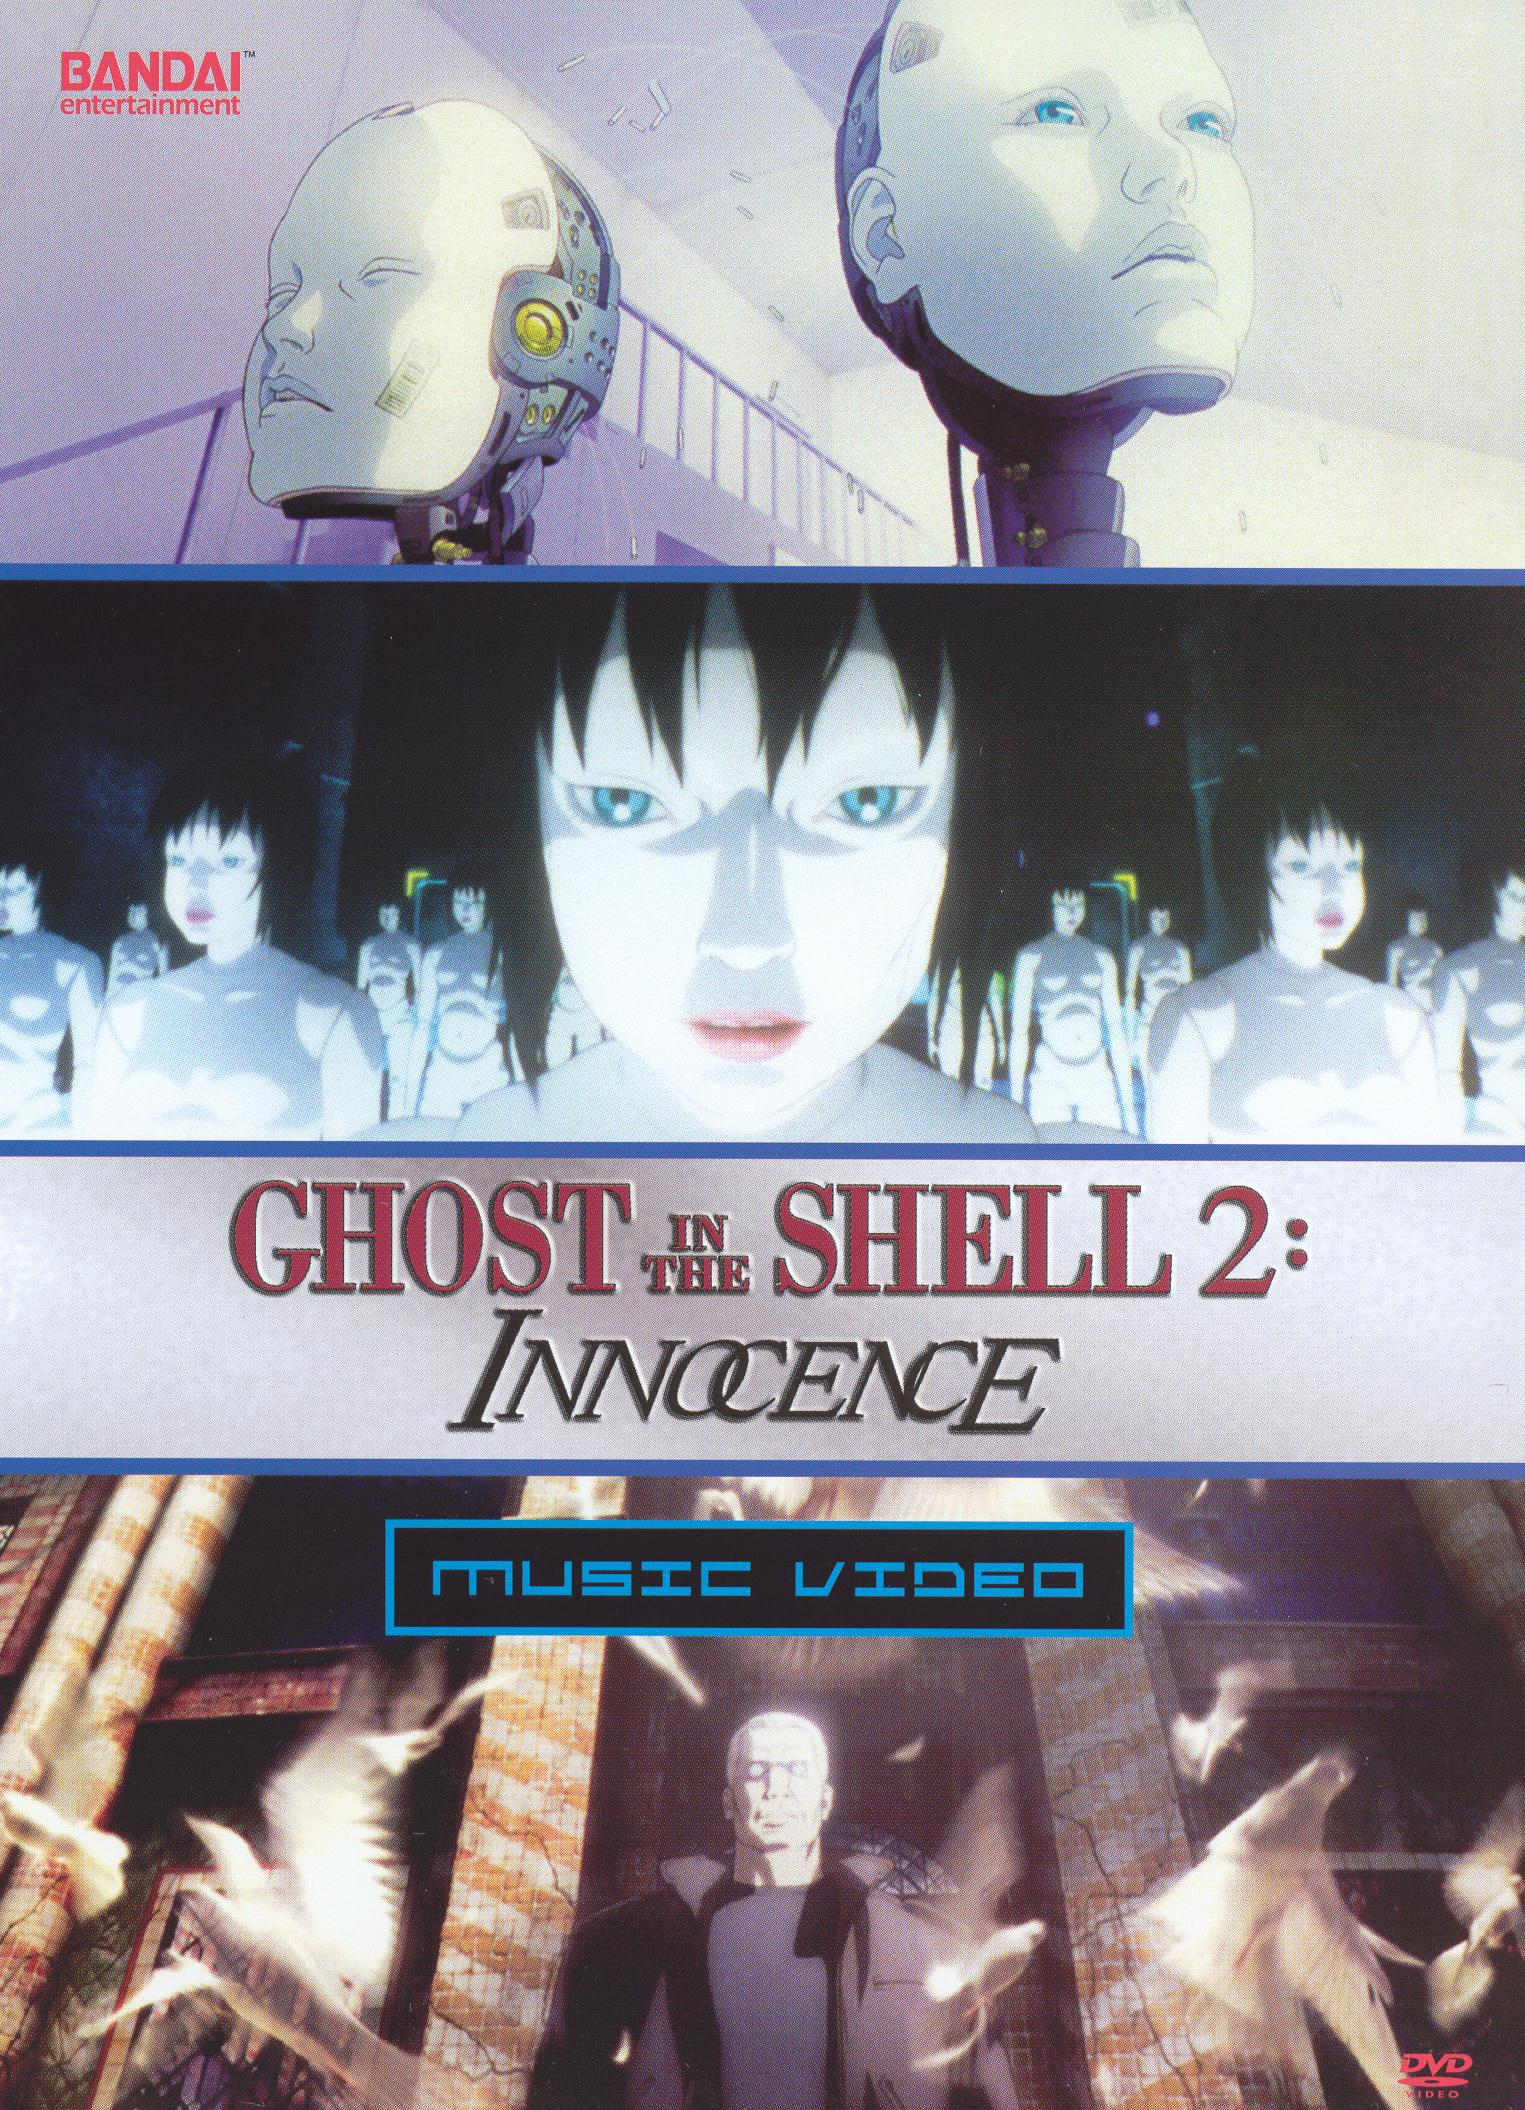 Ghost in the Shell 2: Innocence - Music Video